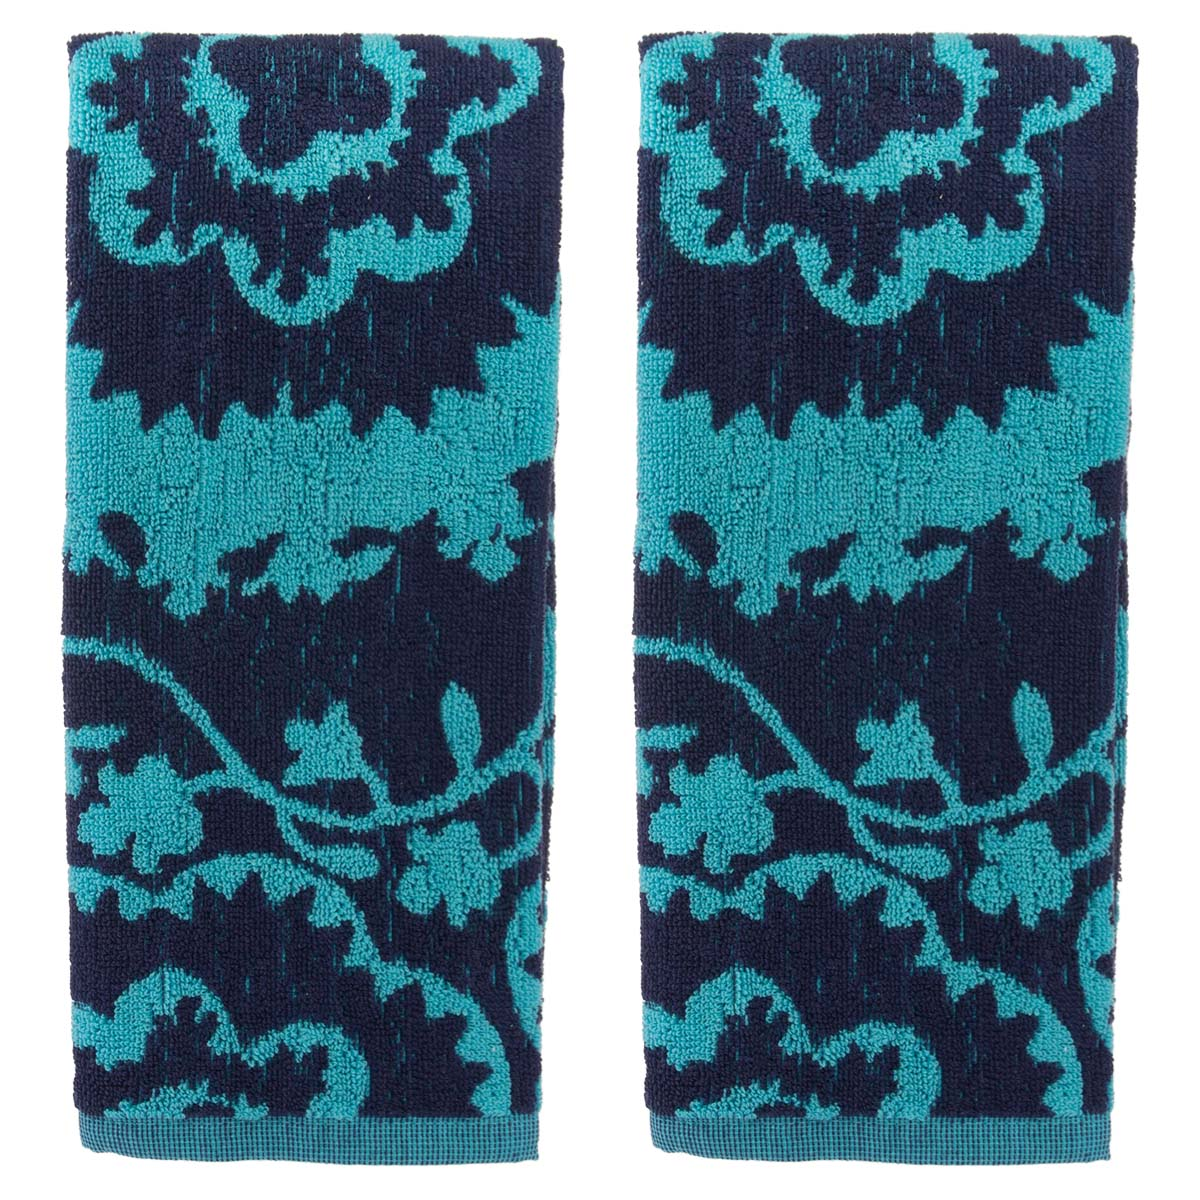 Oui By French Bull (2 Pack) Kitchen Towels Set Colorful Cotton Terry Hand Towel Modern Dishcloths